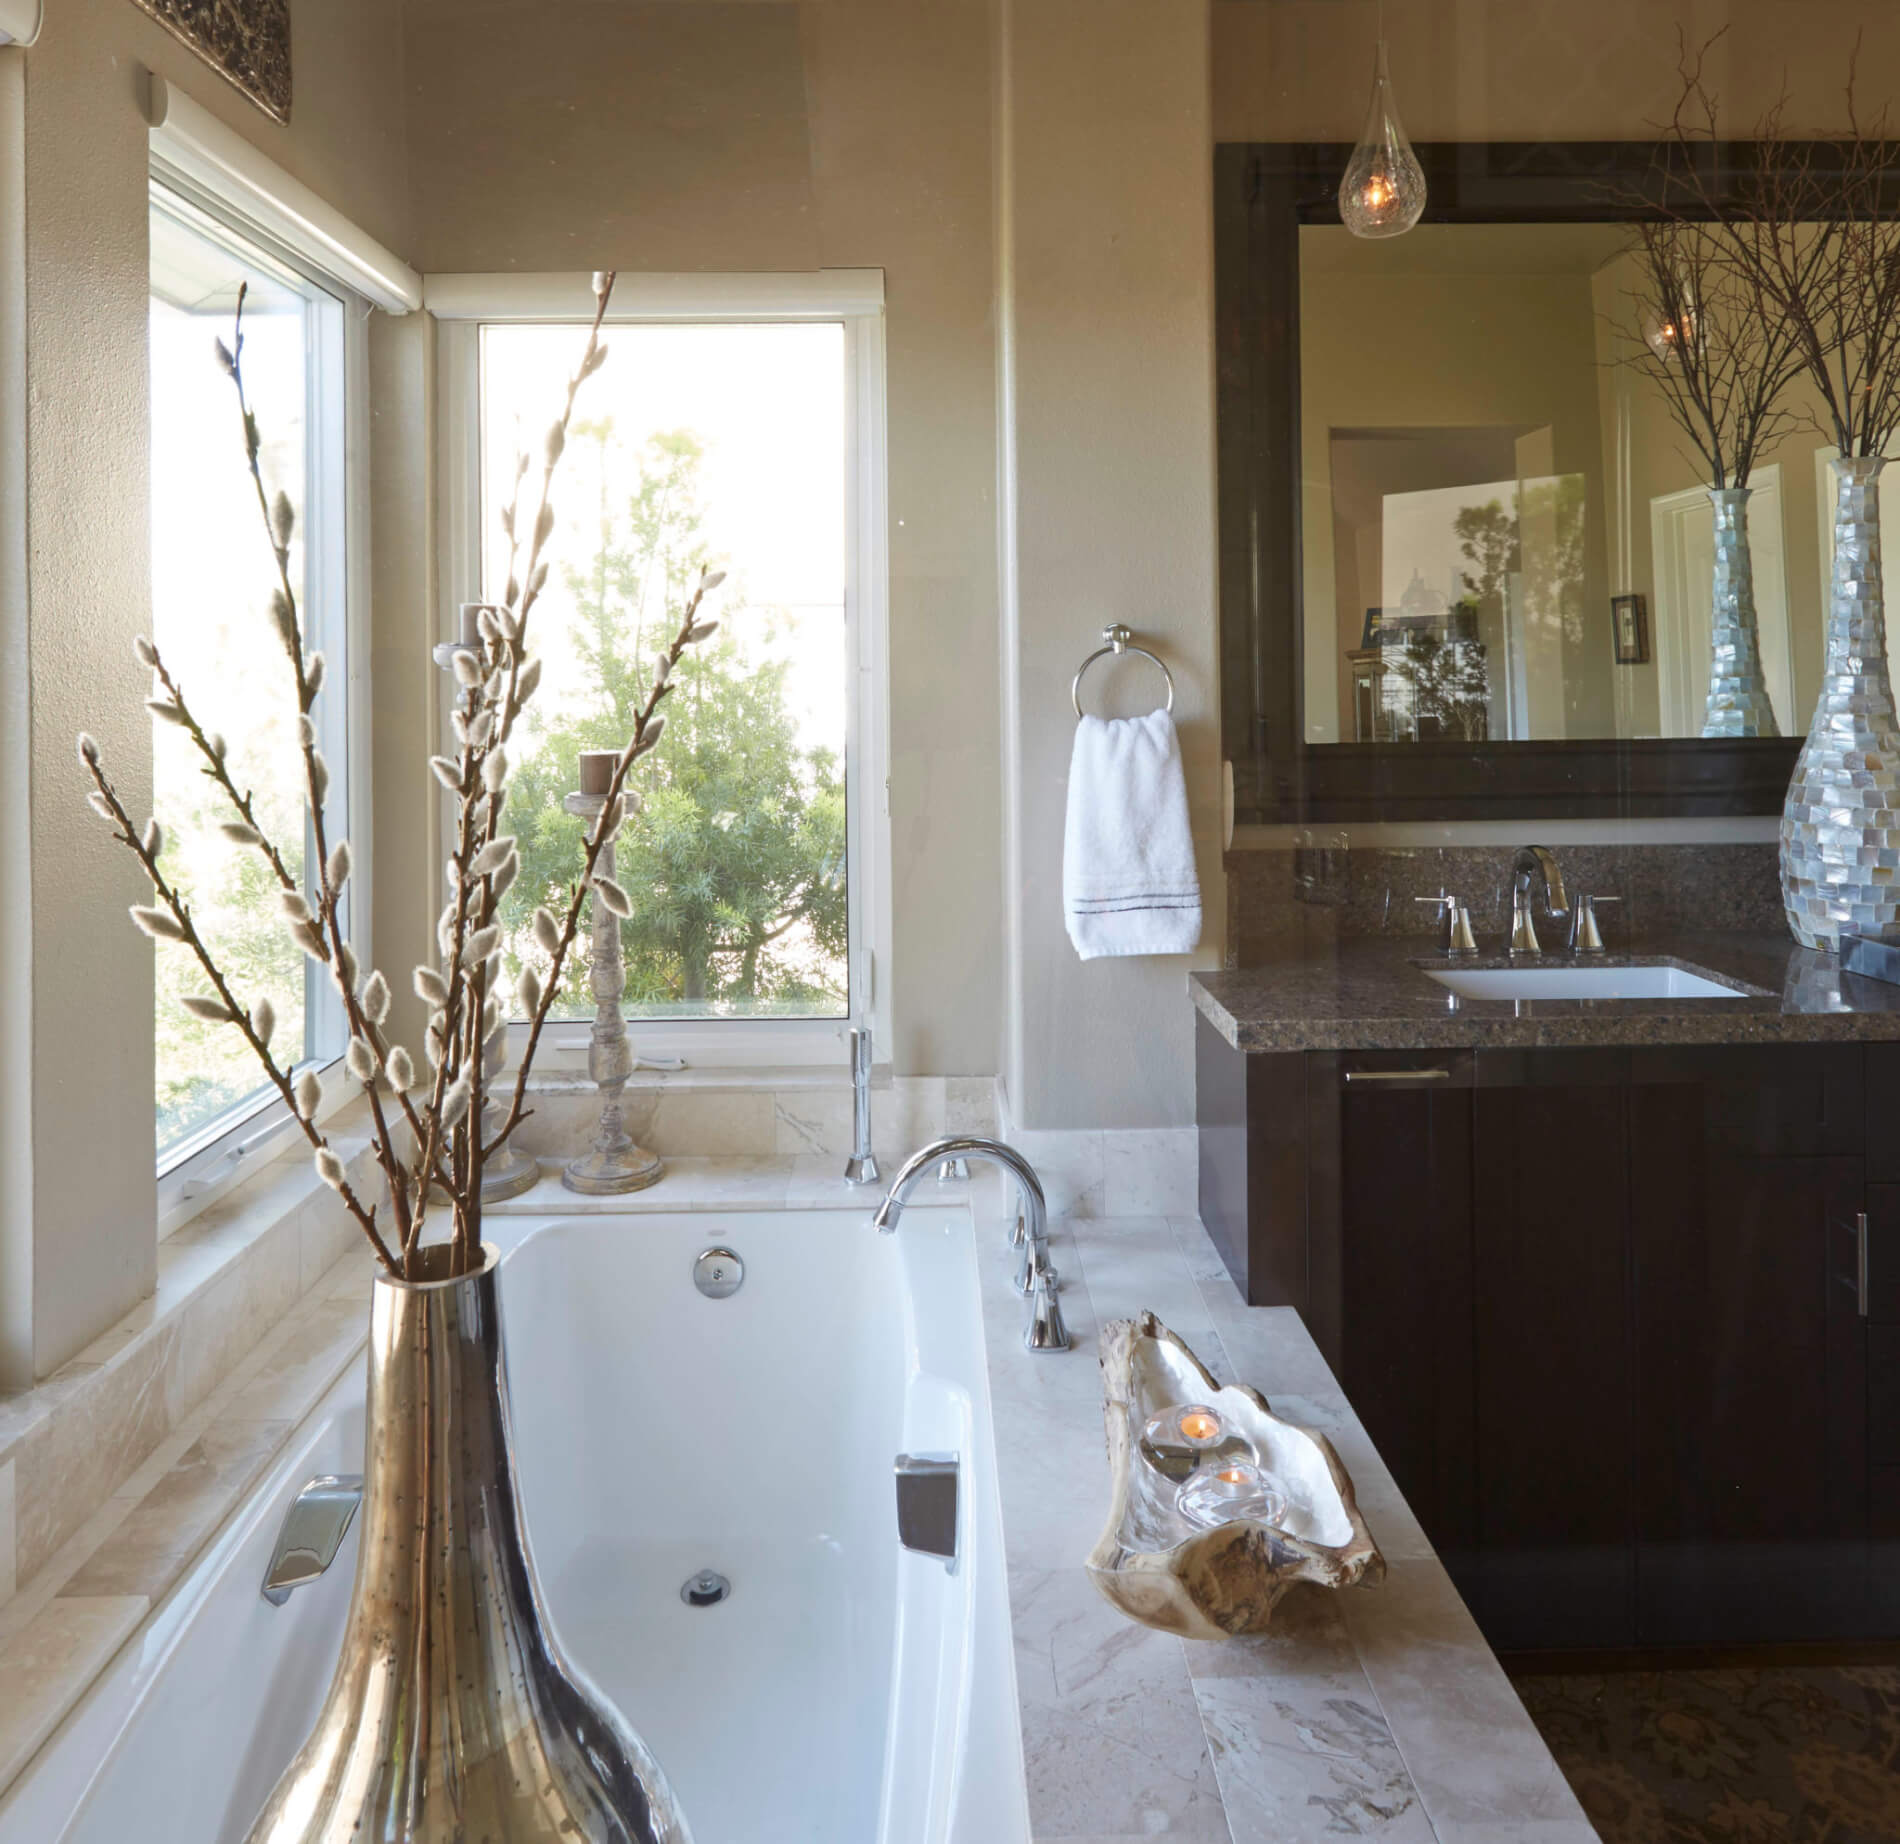 Orange County Luxury Bathroom Remodel, Bathroom Remodeling Companies in Orange County, Residential Bathroom Remodeling Companies